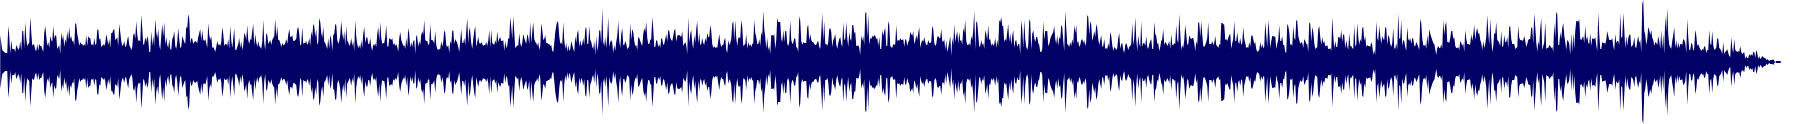 waveform of track #78128